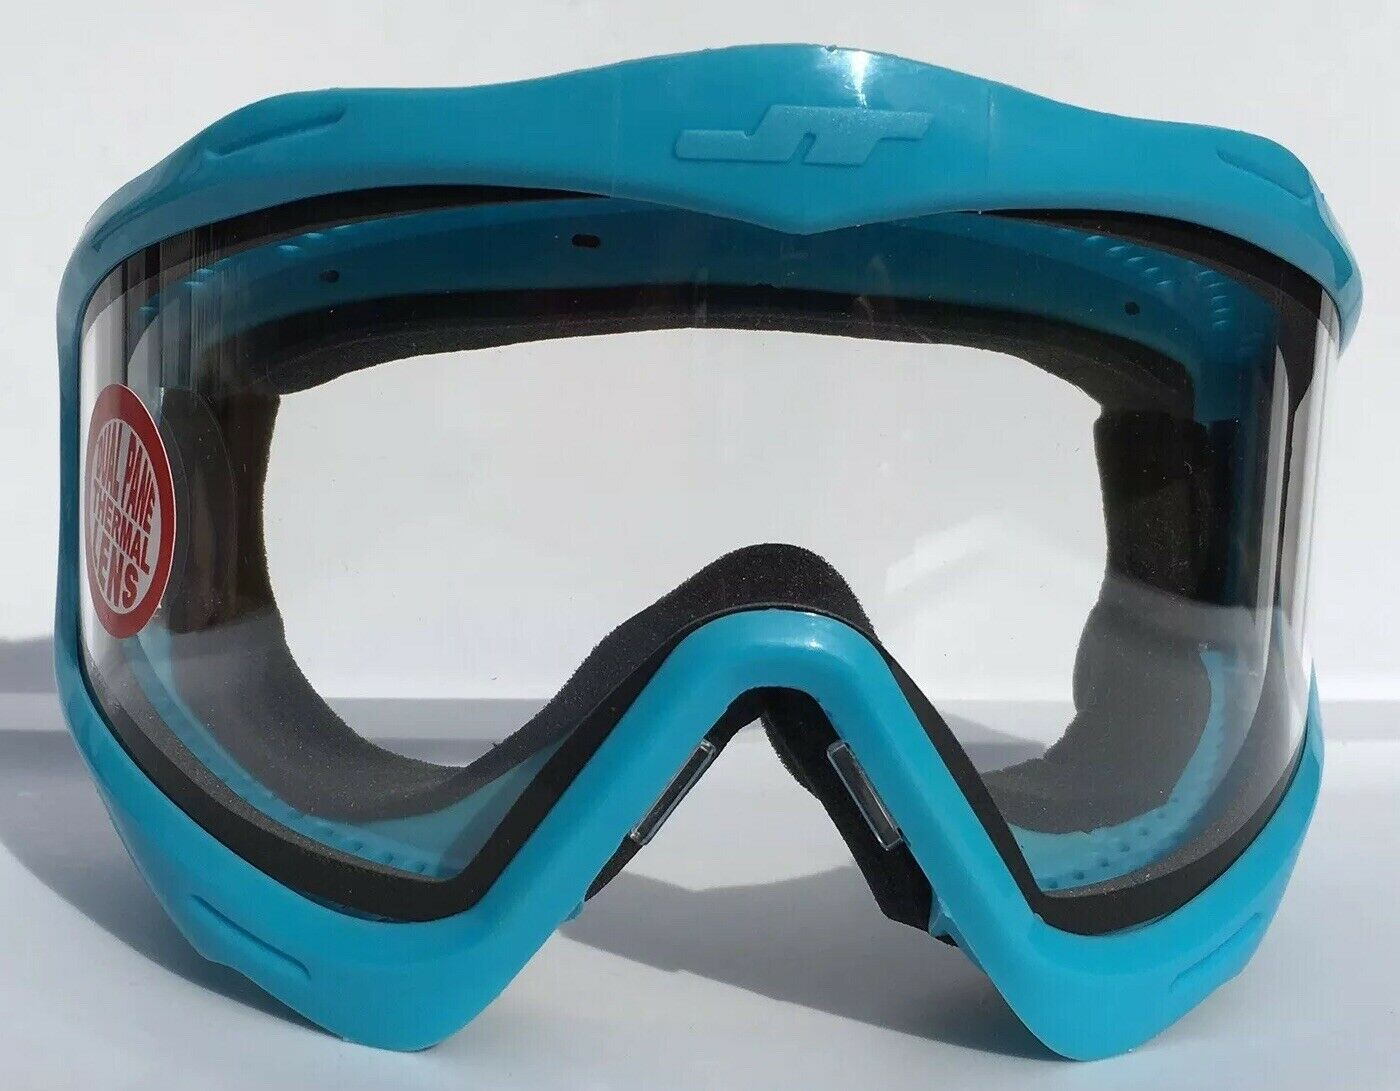 NEW JT Spectra Sky bluee Proflex Limited Edition Paintball Mask Frame Thermal